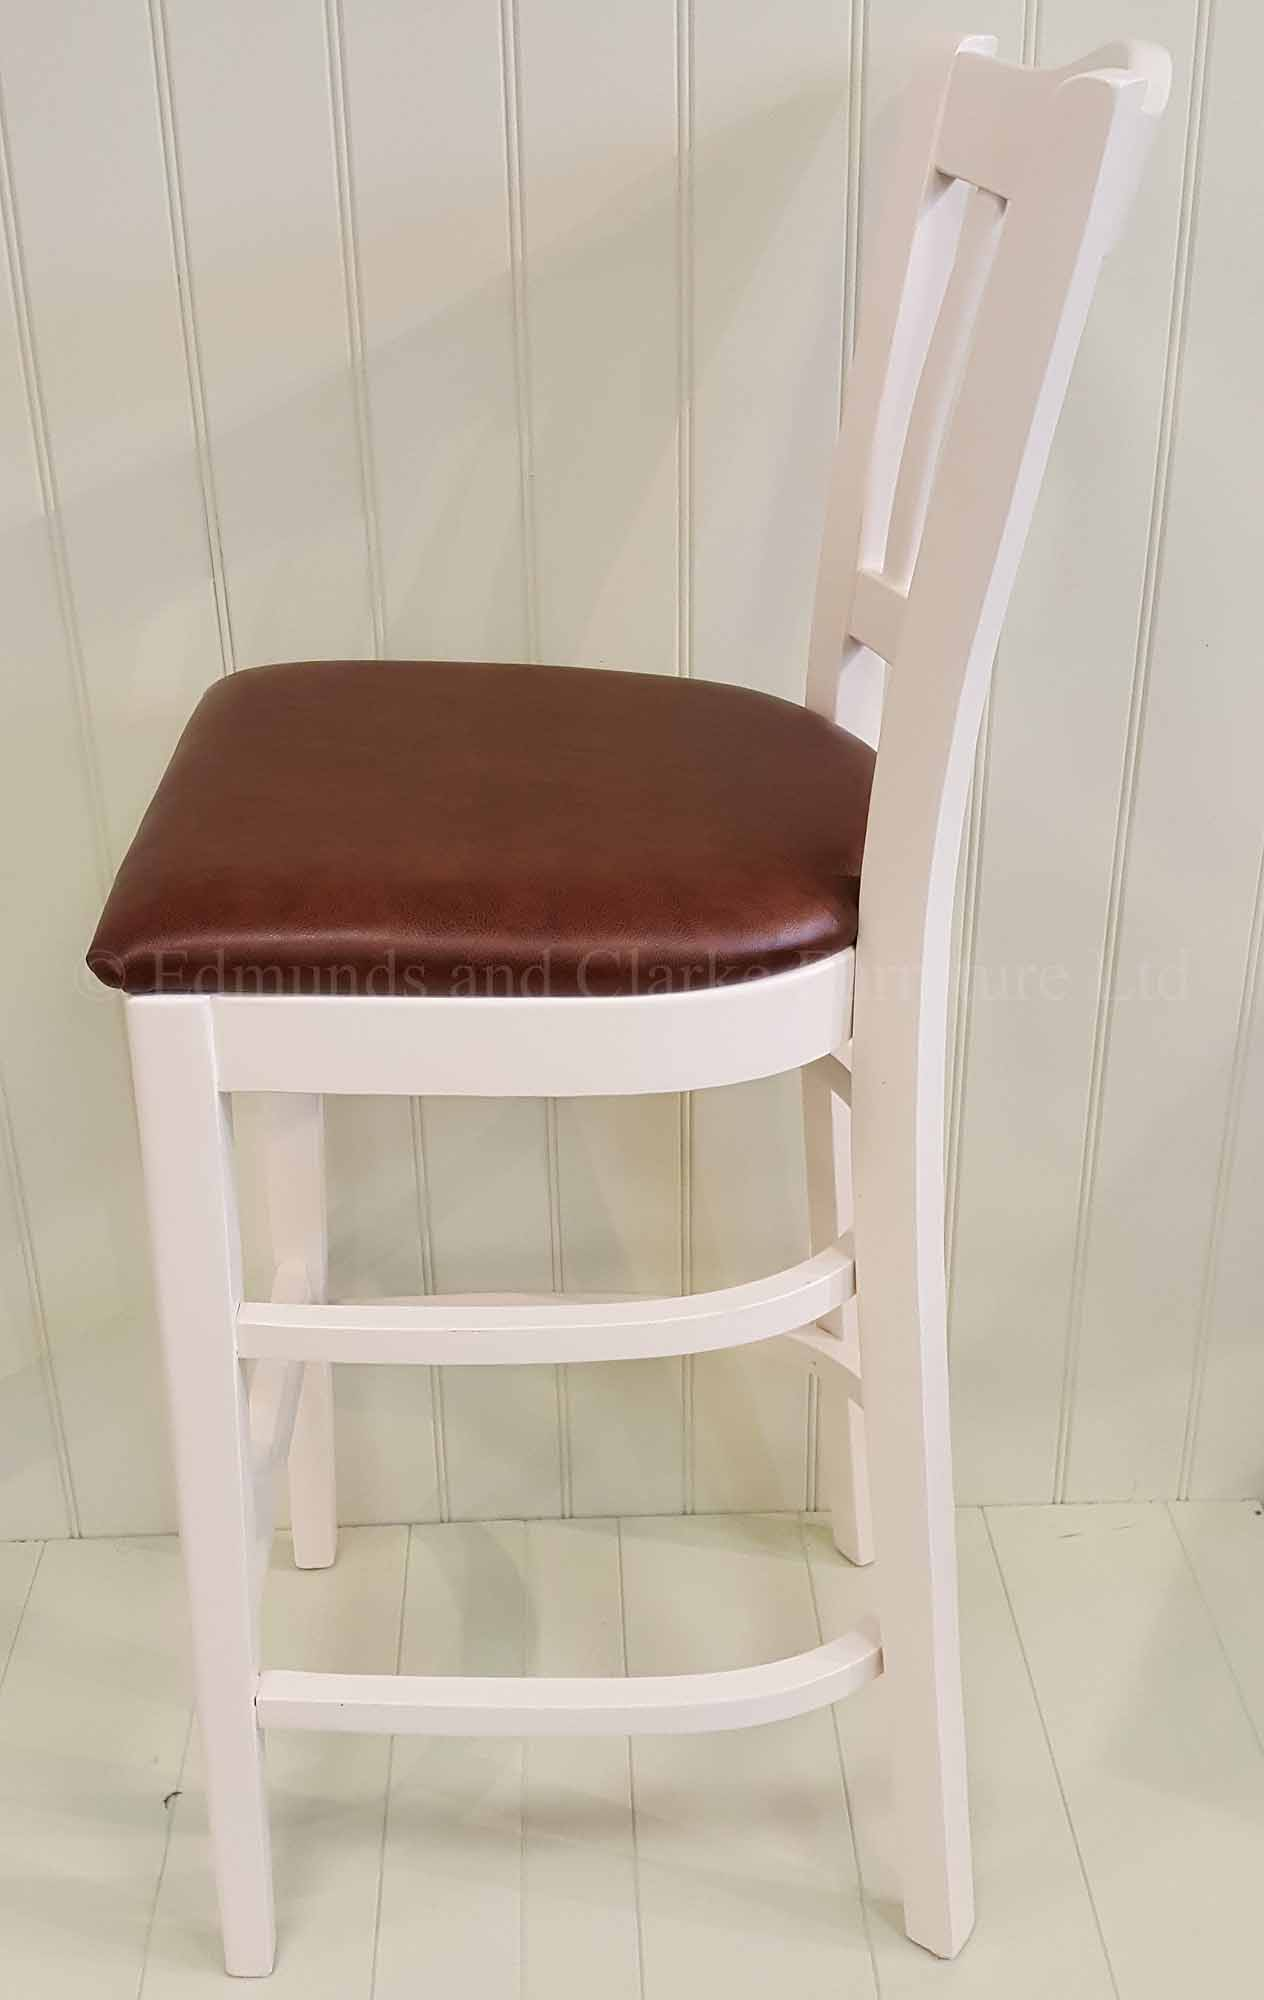 Kitchen breakfast bar stool painted white with leather seat